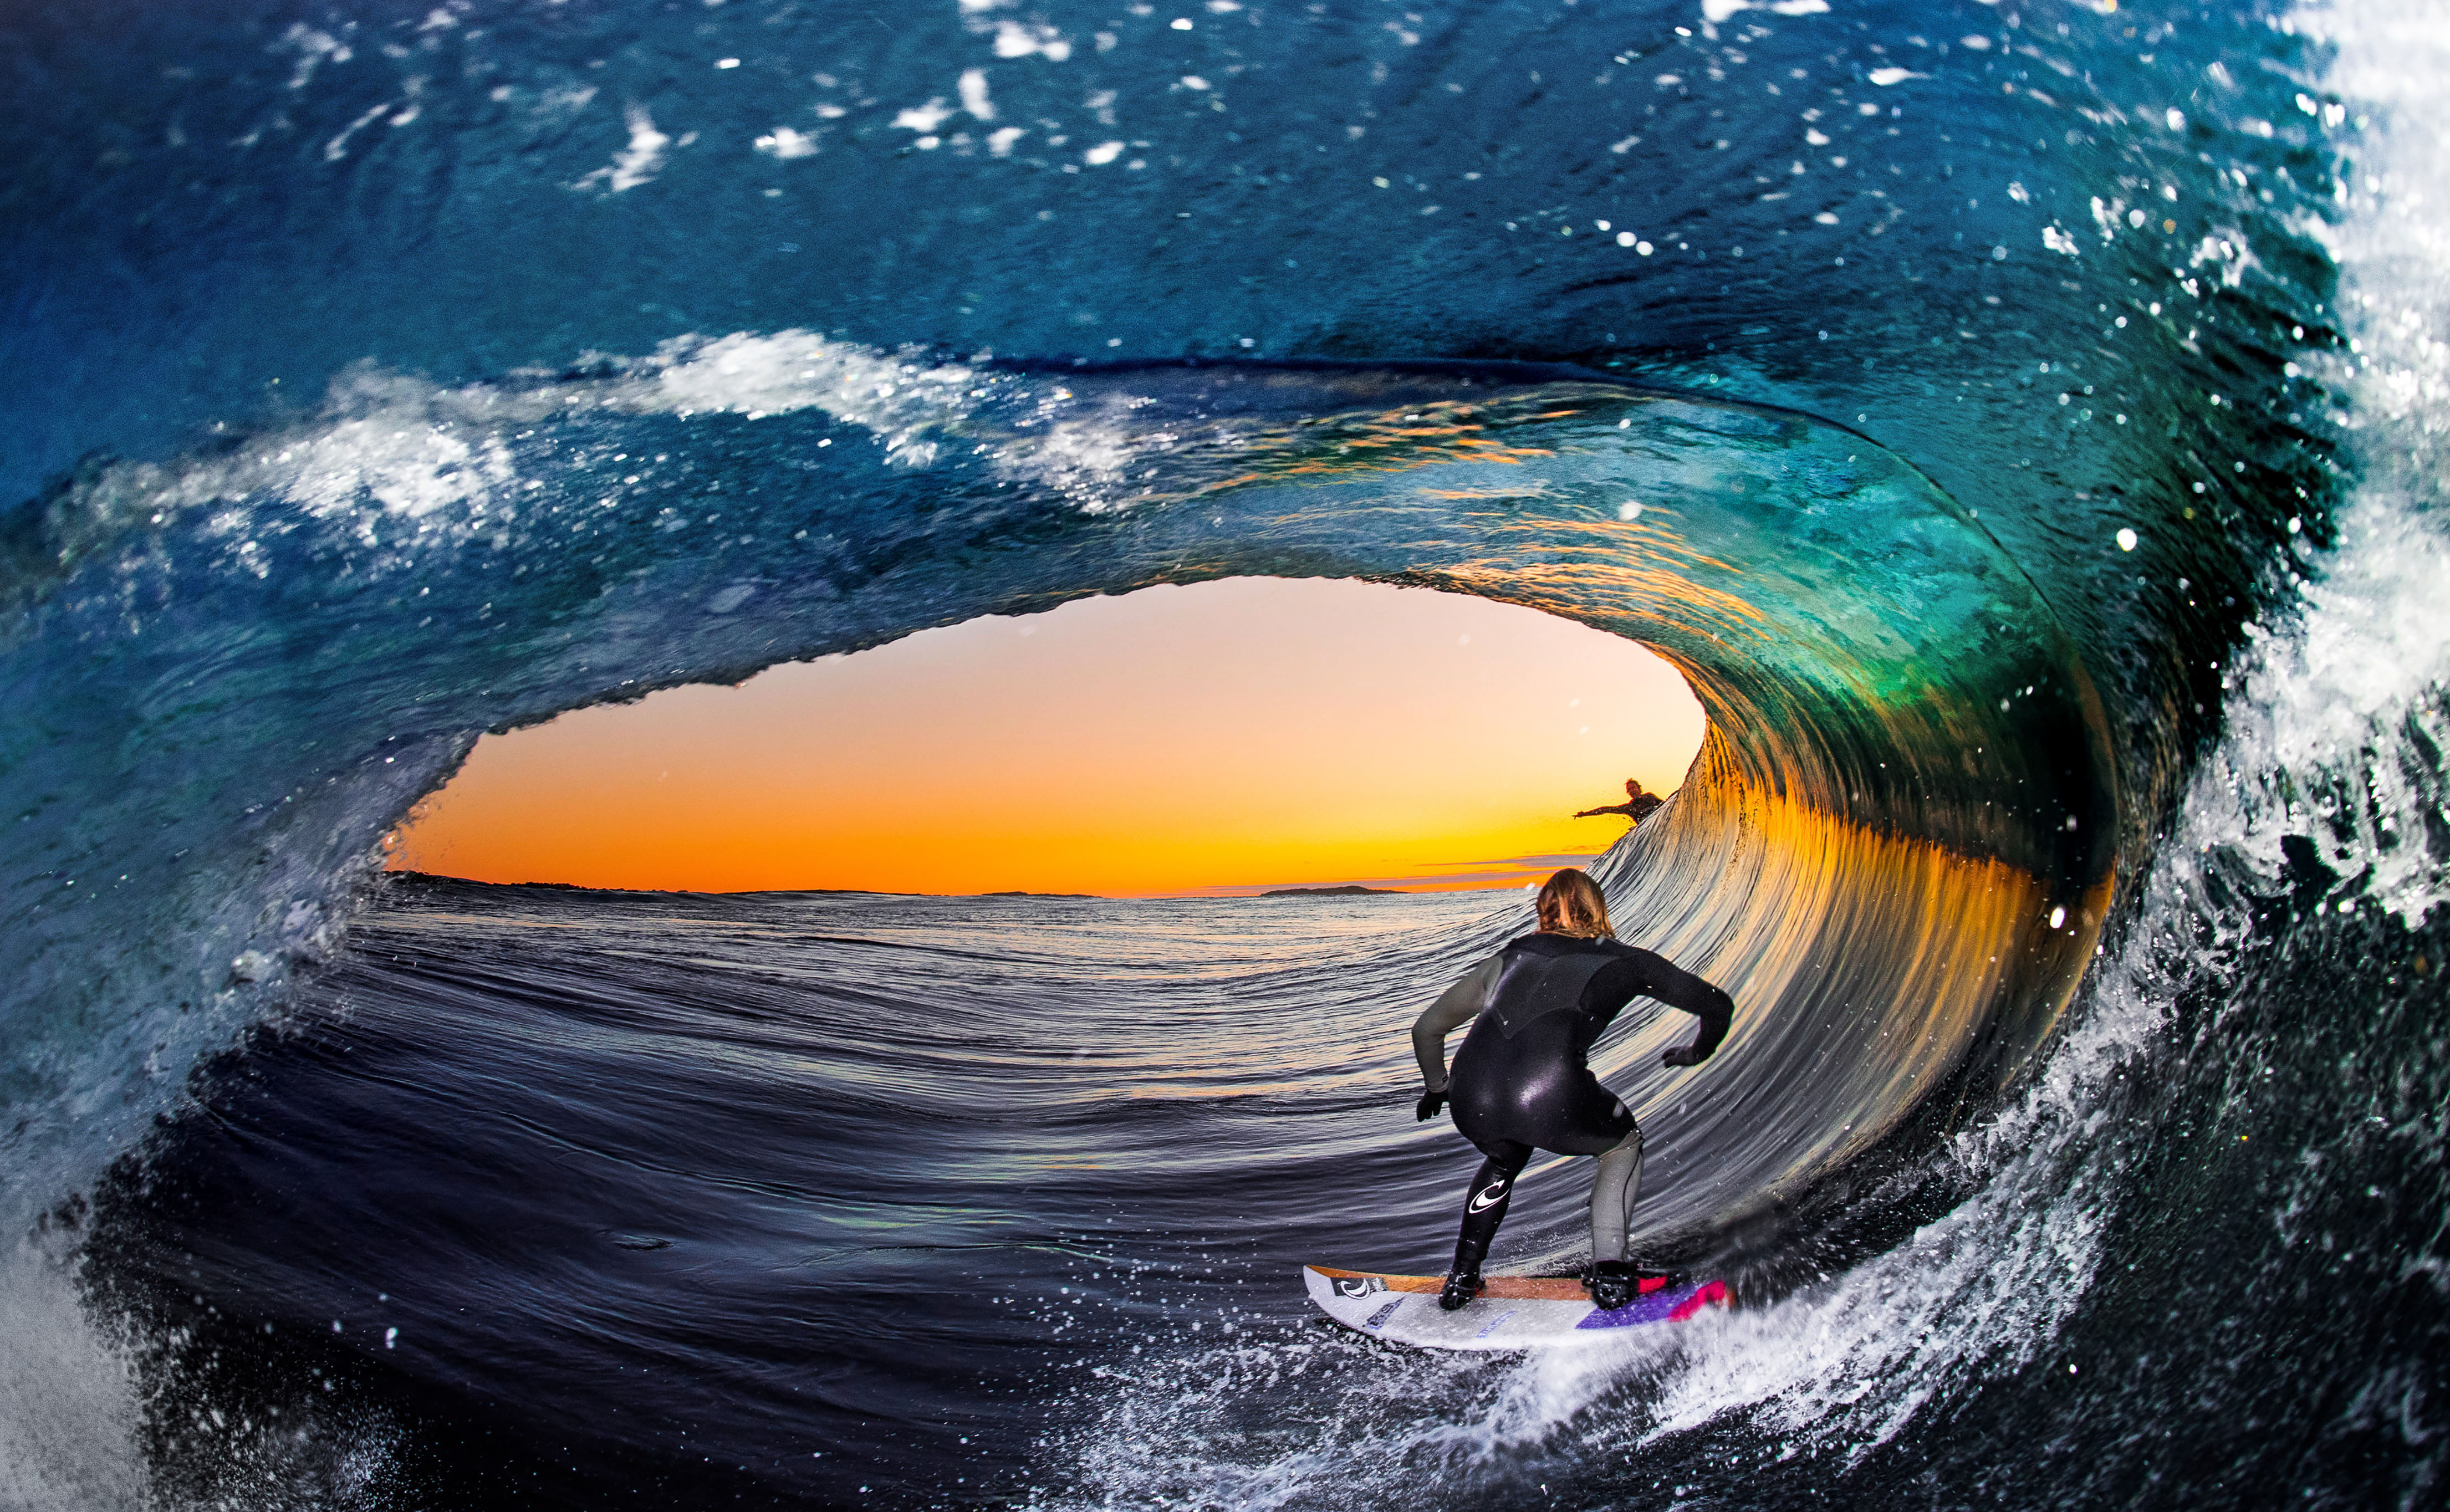 Incredible Shots Of Pro-surfers Riding Waves - Taken From Inside The Barrel